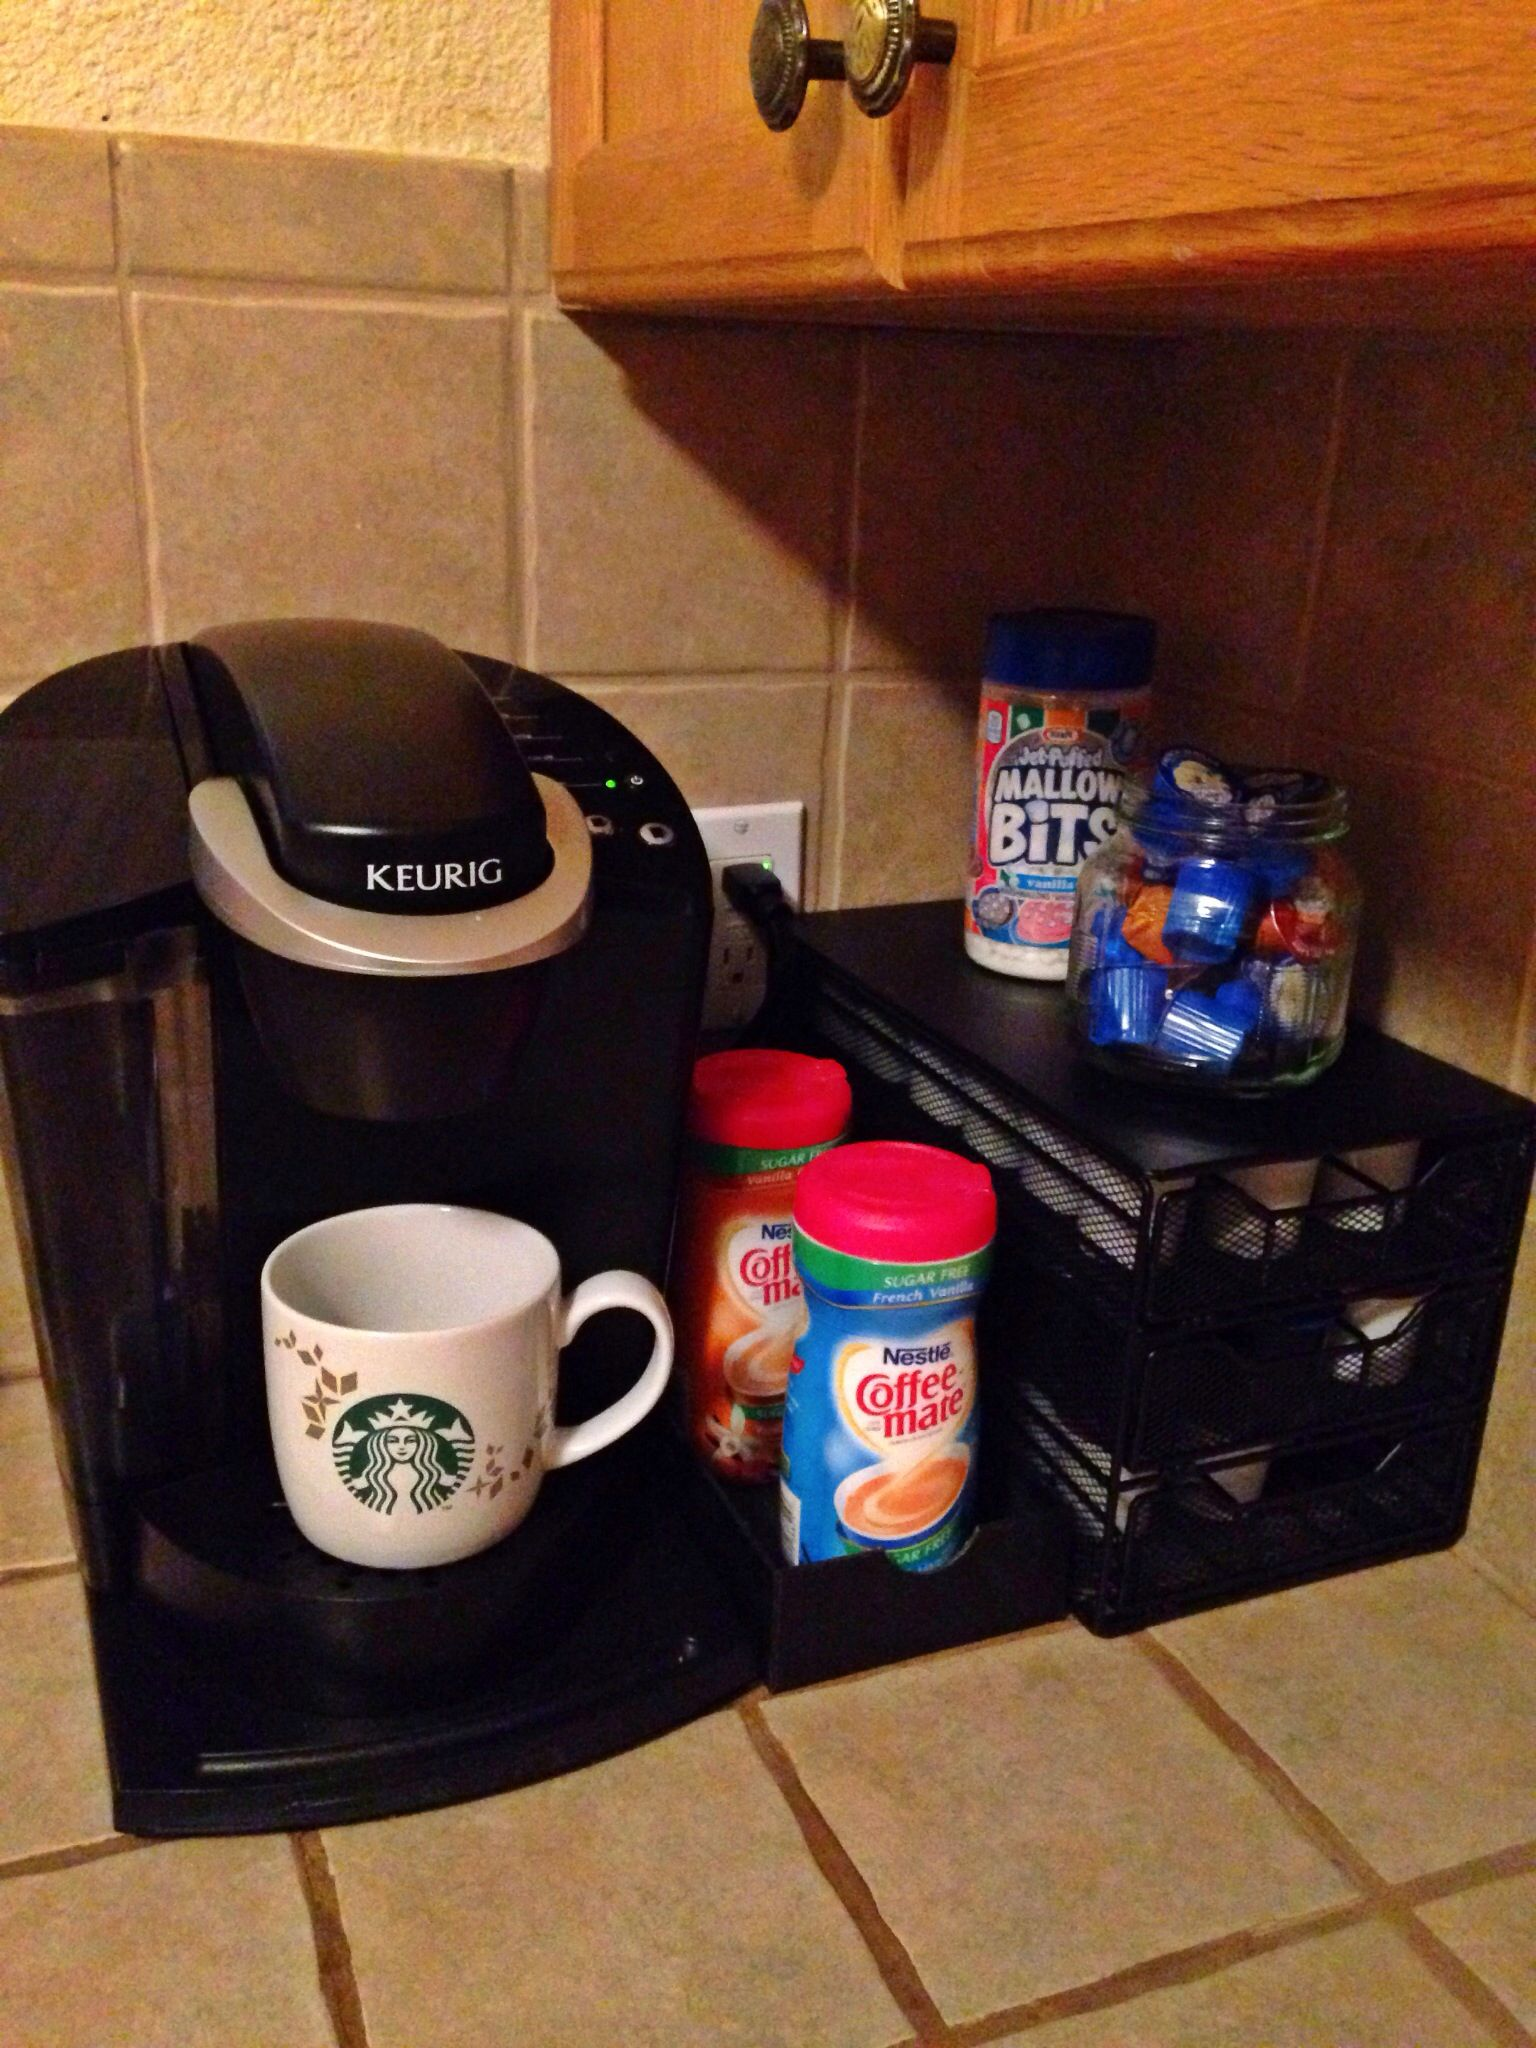 My New Keurig Beverage Station So Far